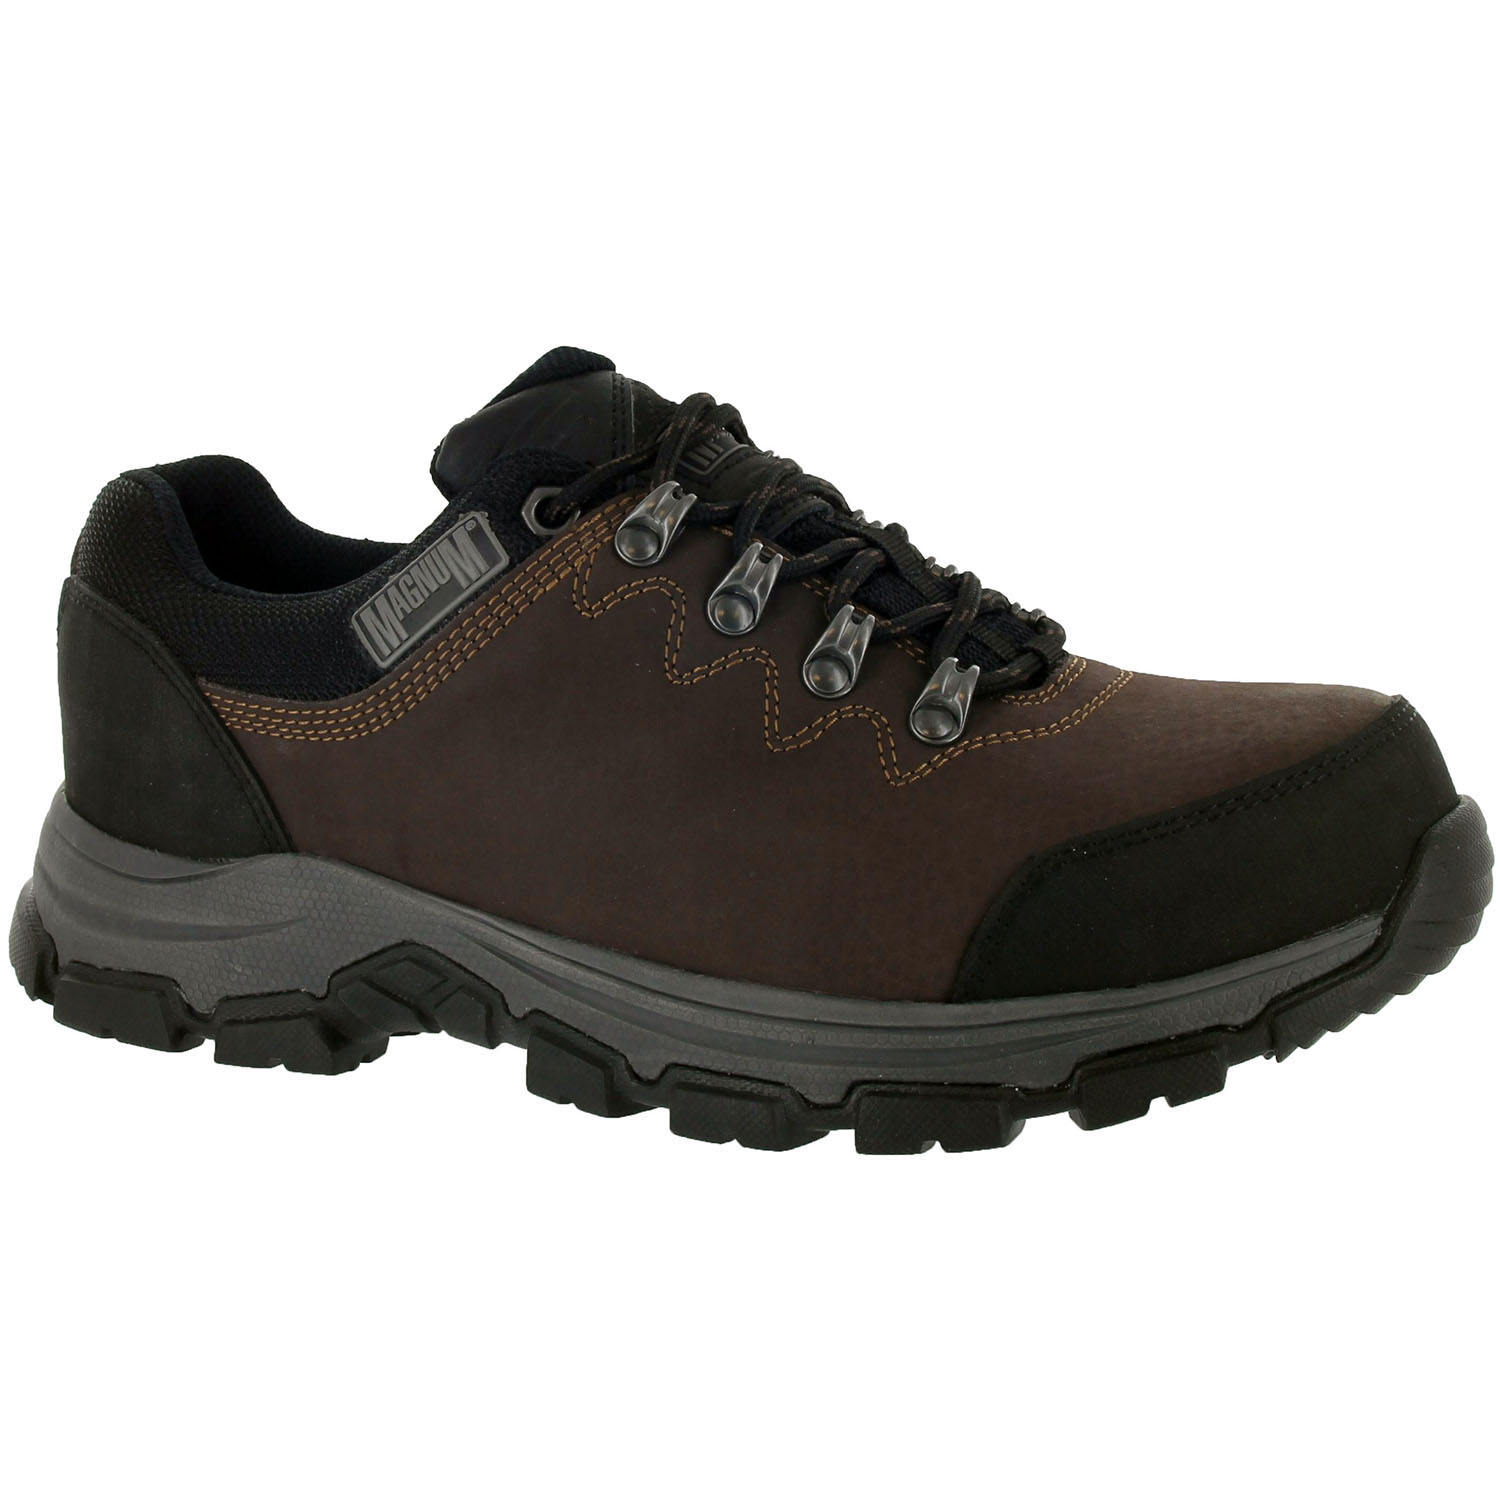 b586a0822a0 Details about Magnum Austin Low/Mid Waterproof Steel Toe Slip Resistant  Leather Work Boots